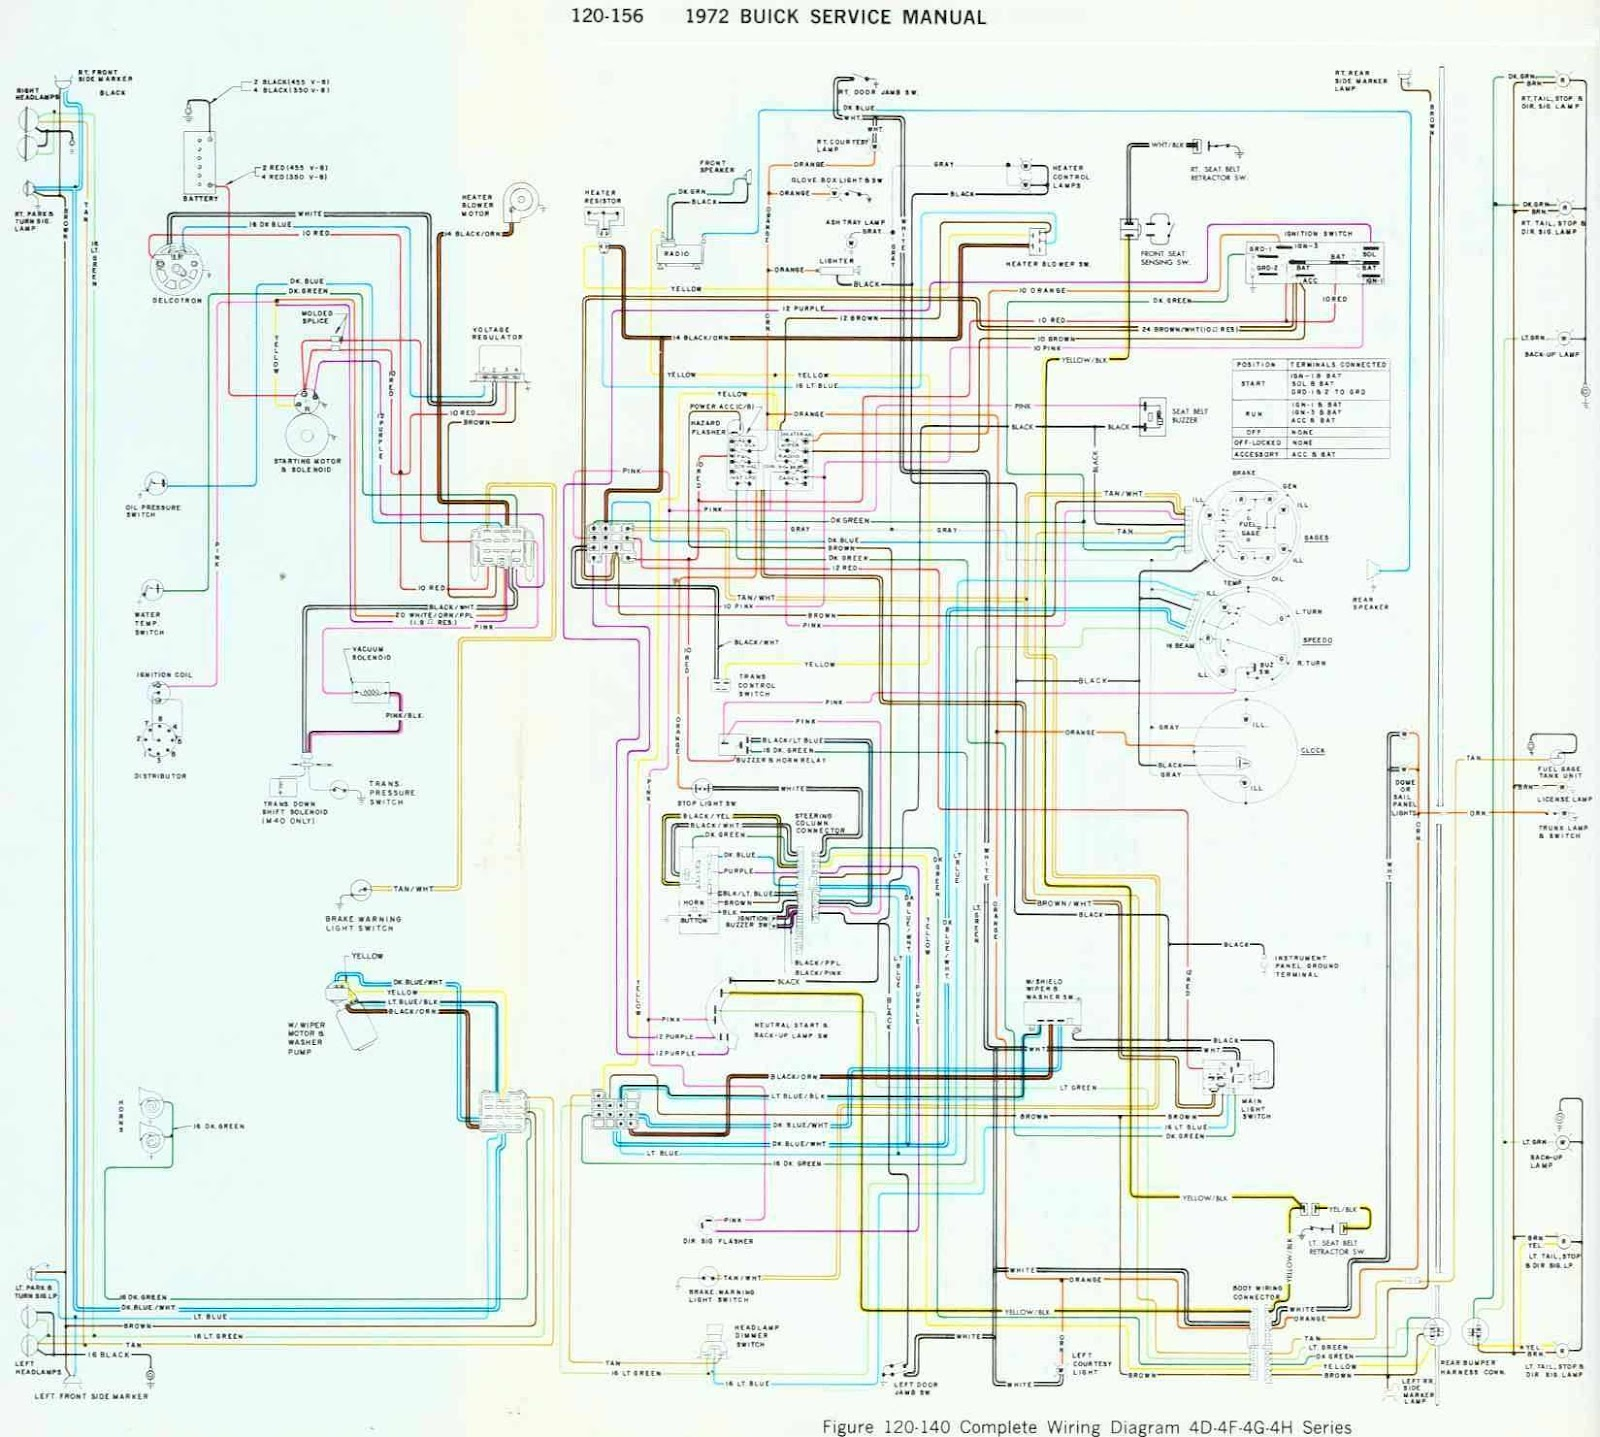 Buick 1972 Complete Wiring Diagram for 4D4F4G4H Series | All about Wiring Diagrams